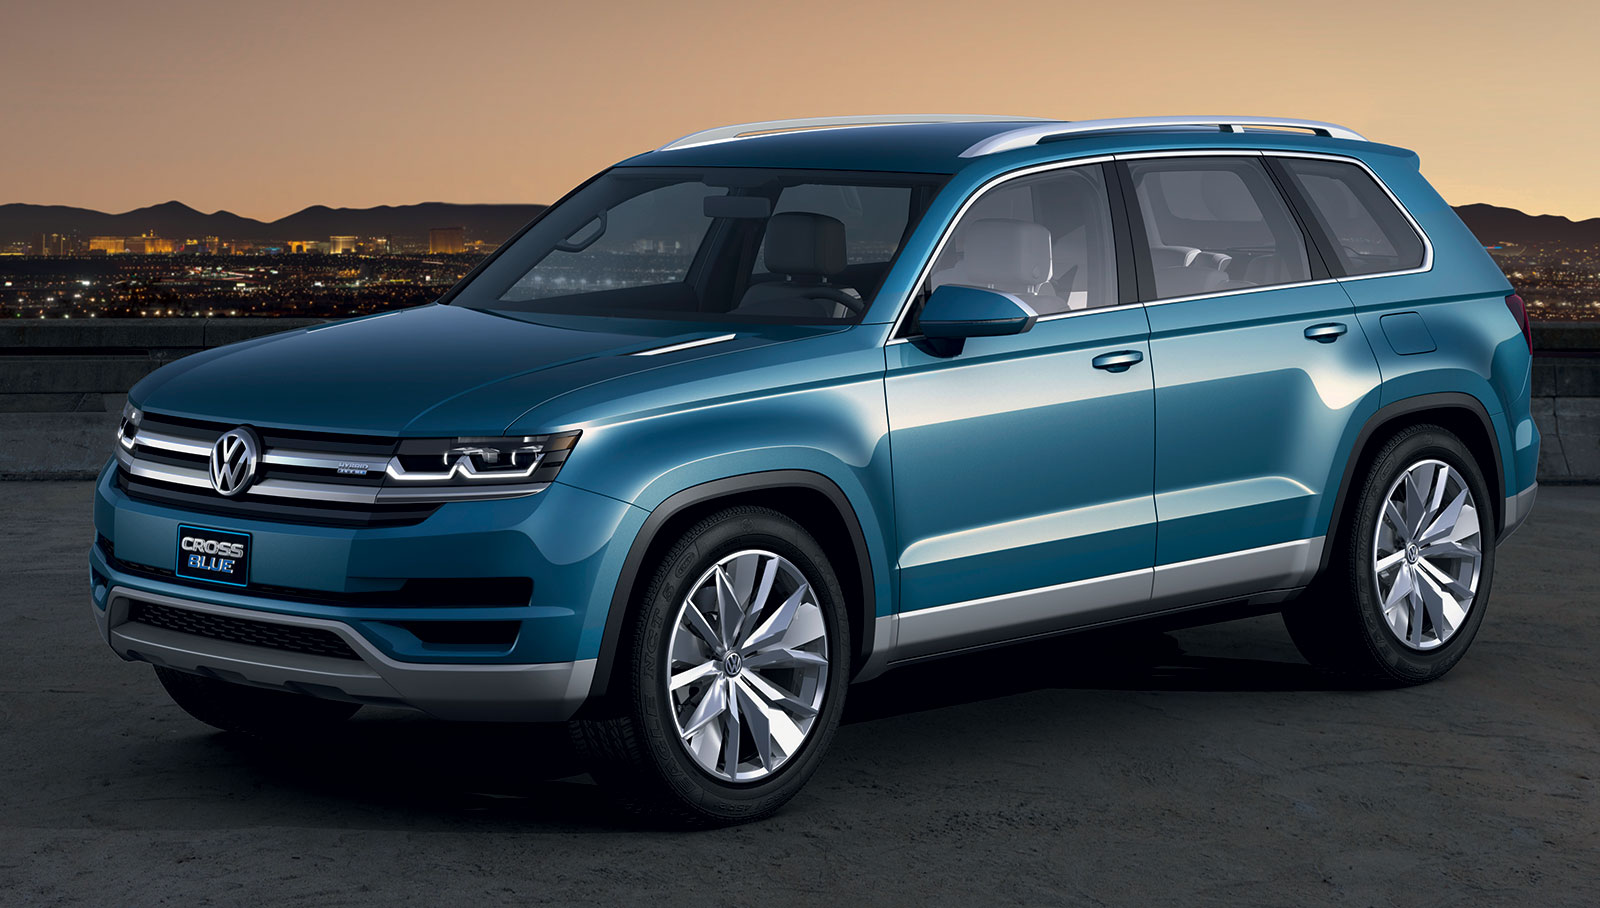 volkswagen to build 7 seater crossblue suv in usa. Black Bedroom Furniture Sets. Home Design Ideas